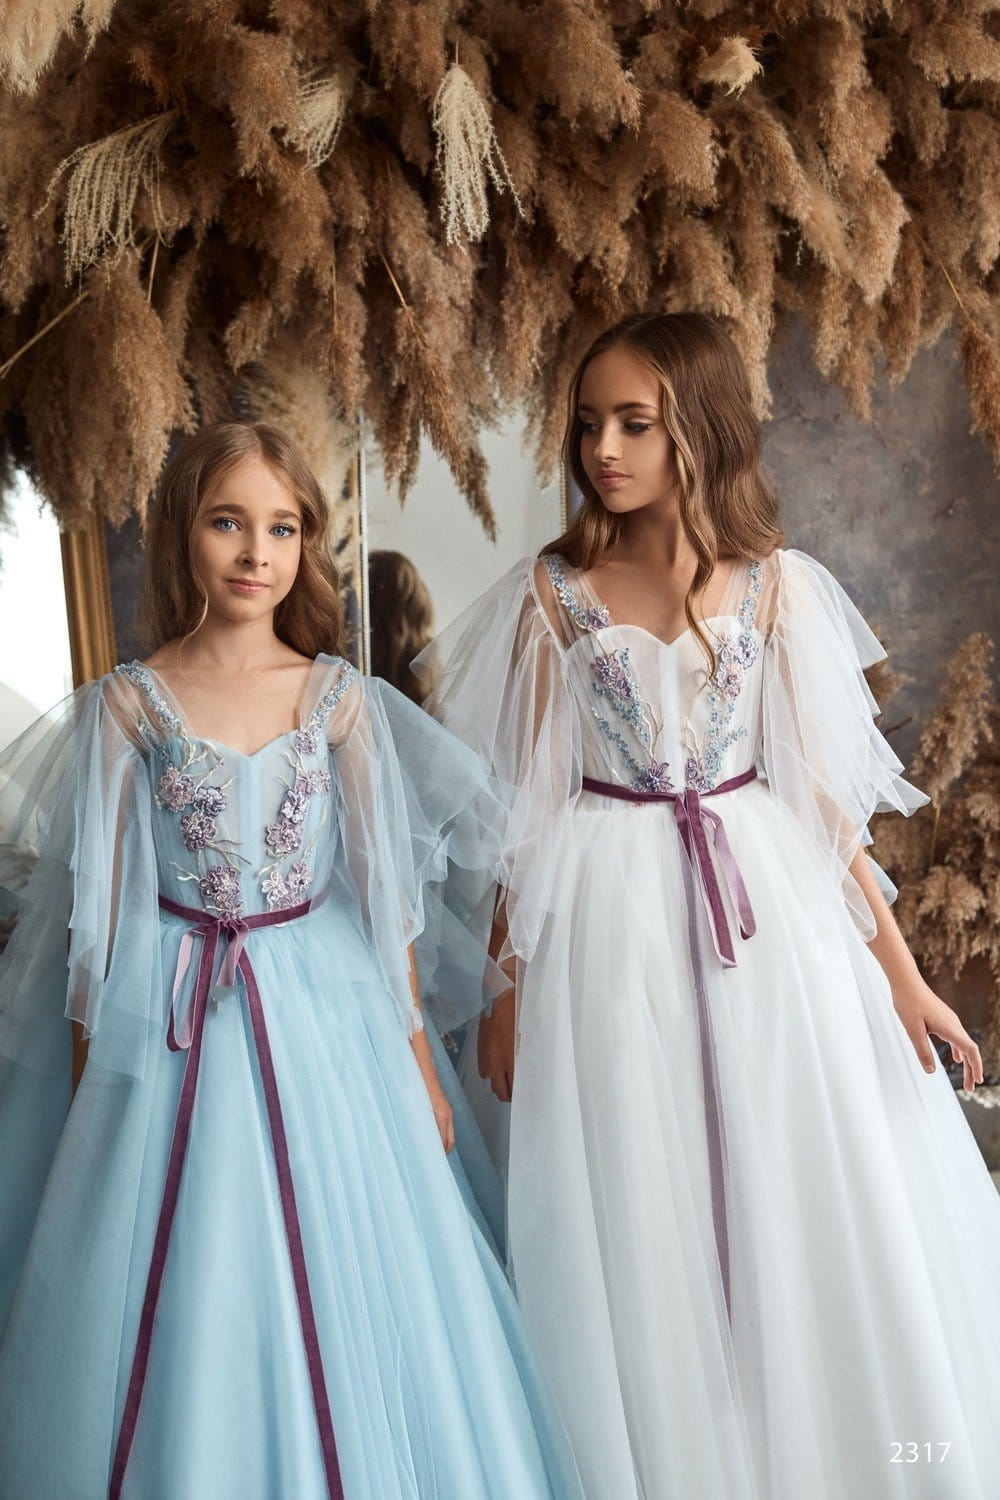 d774ca9abc4 Junior Bridesmaid Cap Sleeves Beaded Tulle Princess Ball Gown or First  Communion Dress